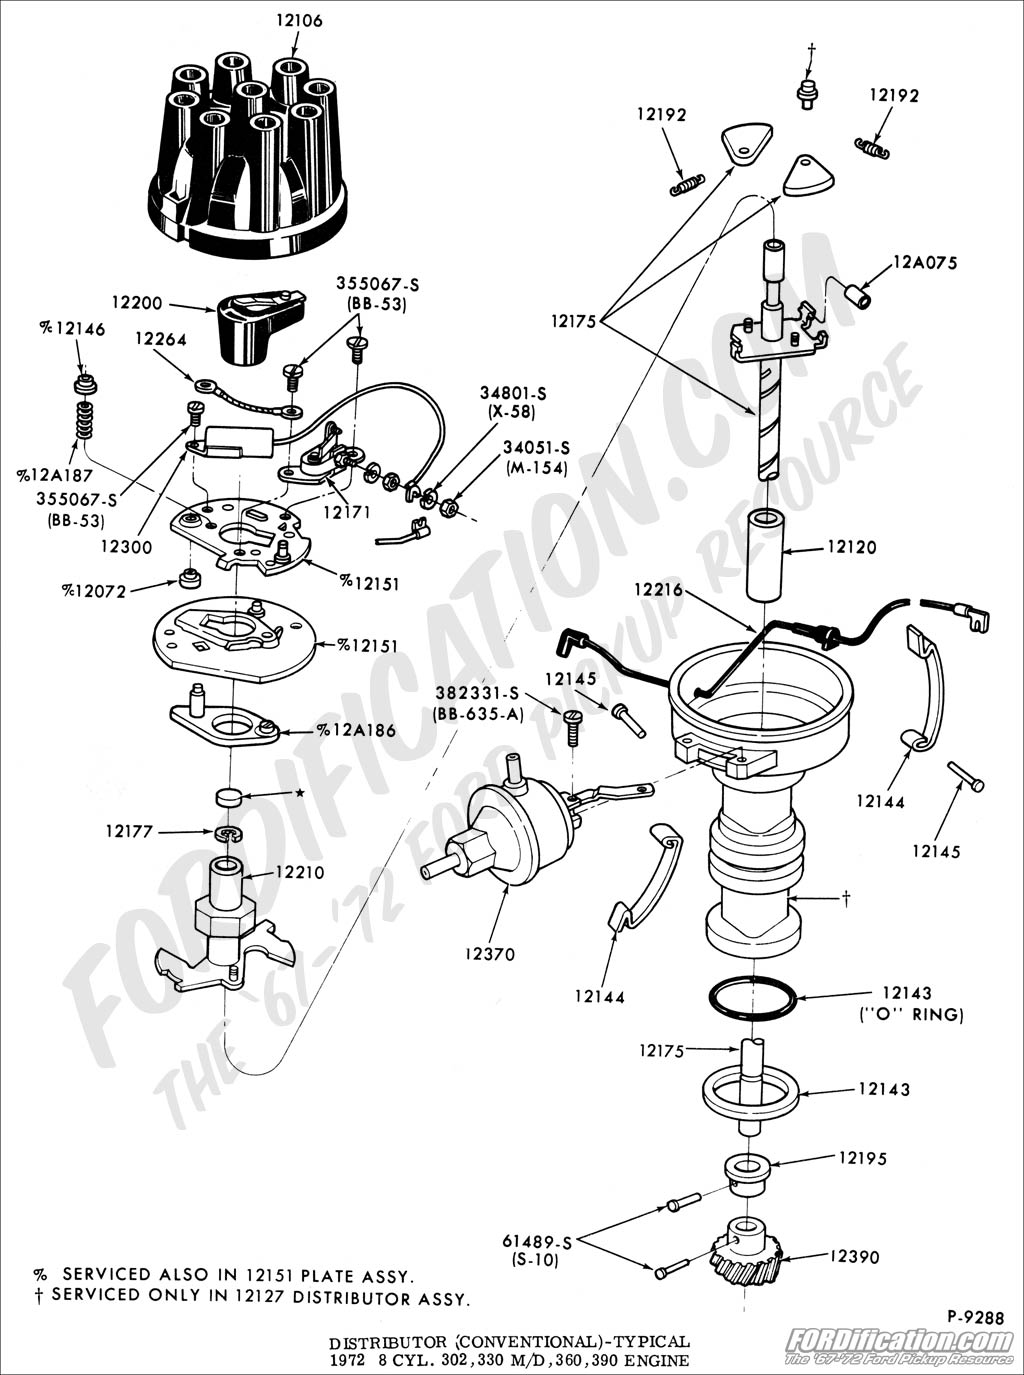 Ford 302 Distributor Wiring Diagram 35 Images Hei For 390 V8 02 Truck Technical Drawings And Schematics Section I At